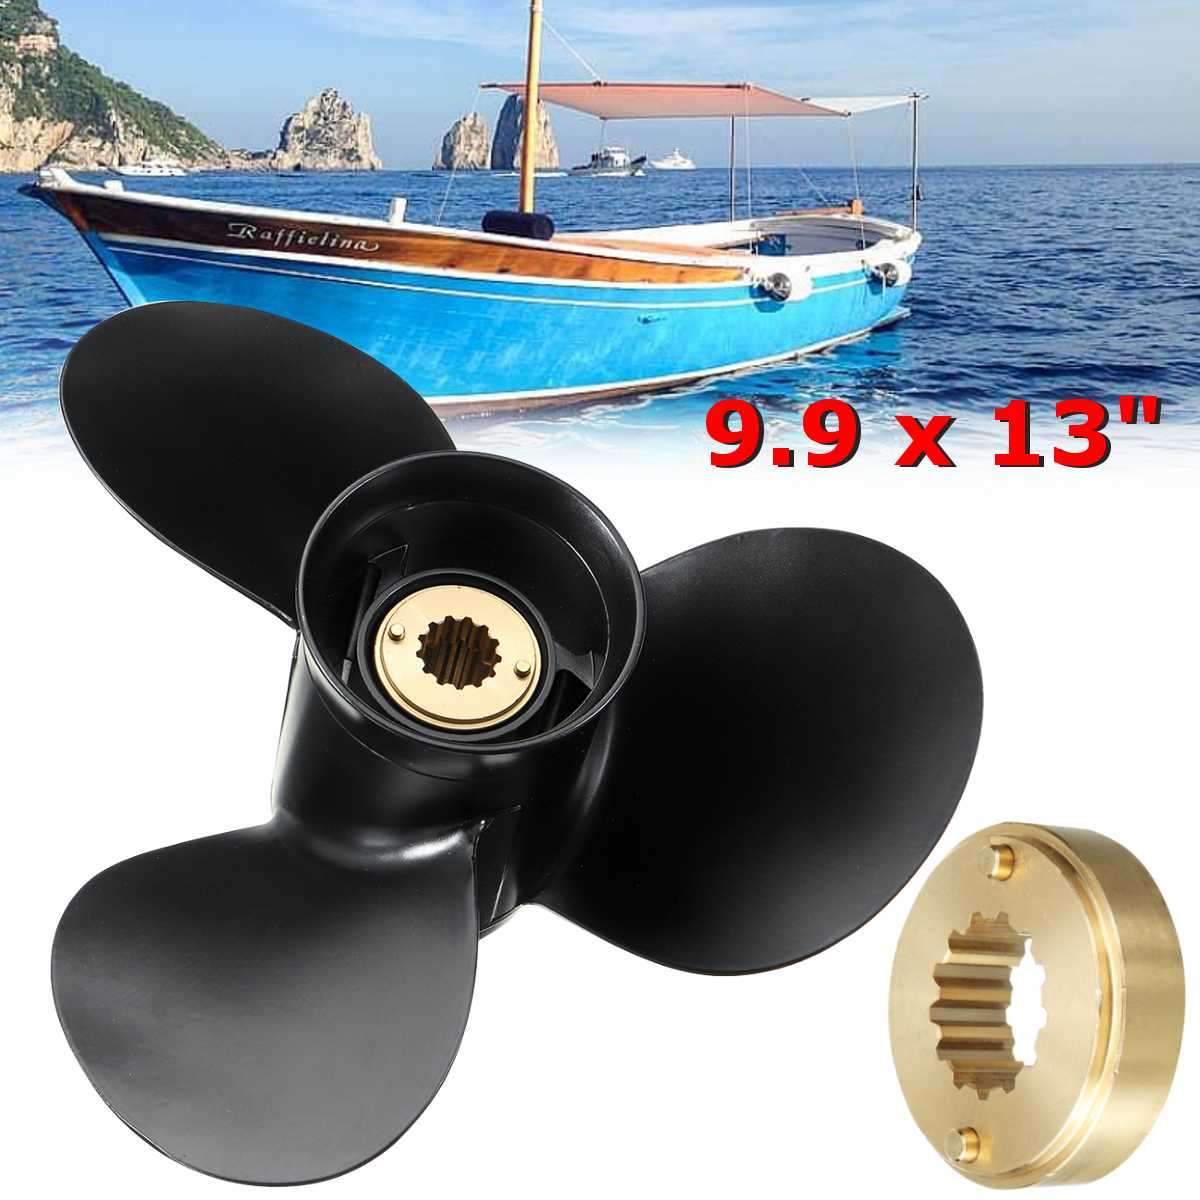 48-19640A40 Aluminum Alloy 9.9 X 13 Mariner Boat Outboard Propeller For Mercury Engine 25-30HP Black 13 Spline Tooth 3 Blades